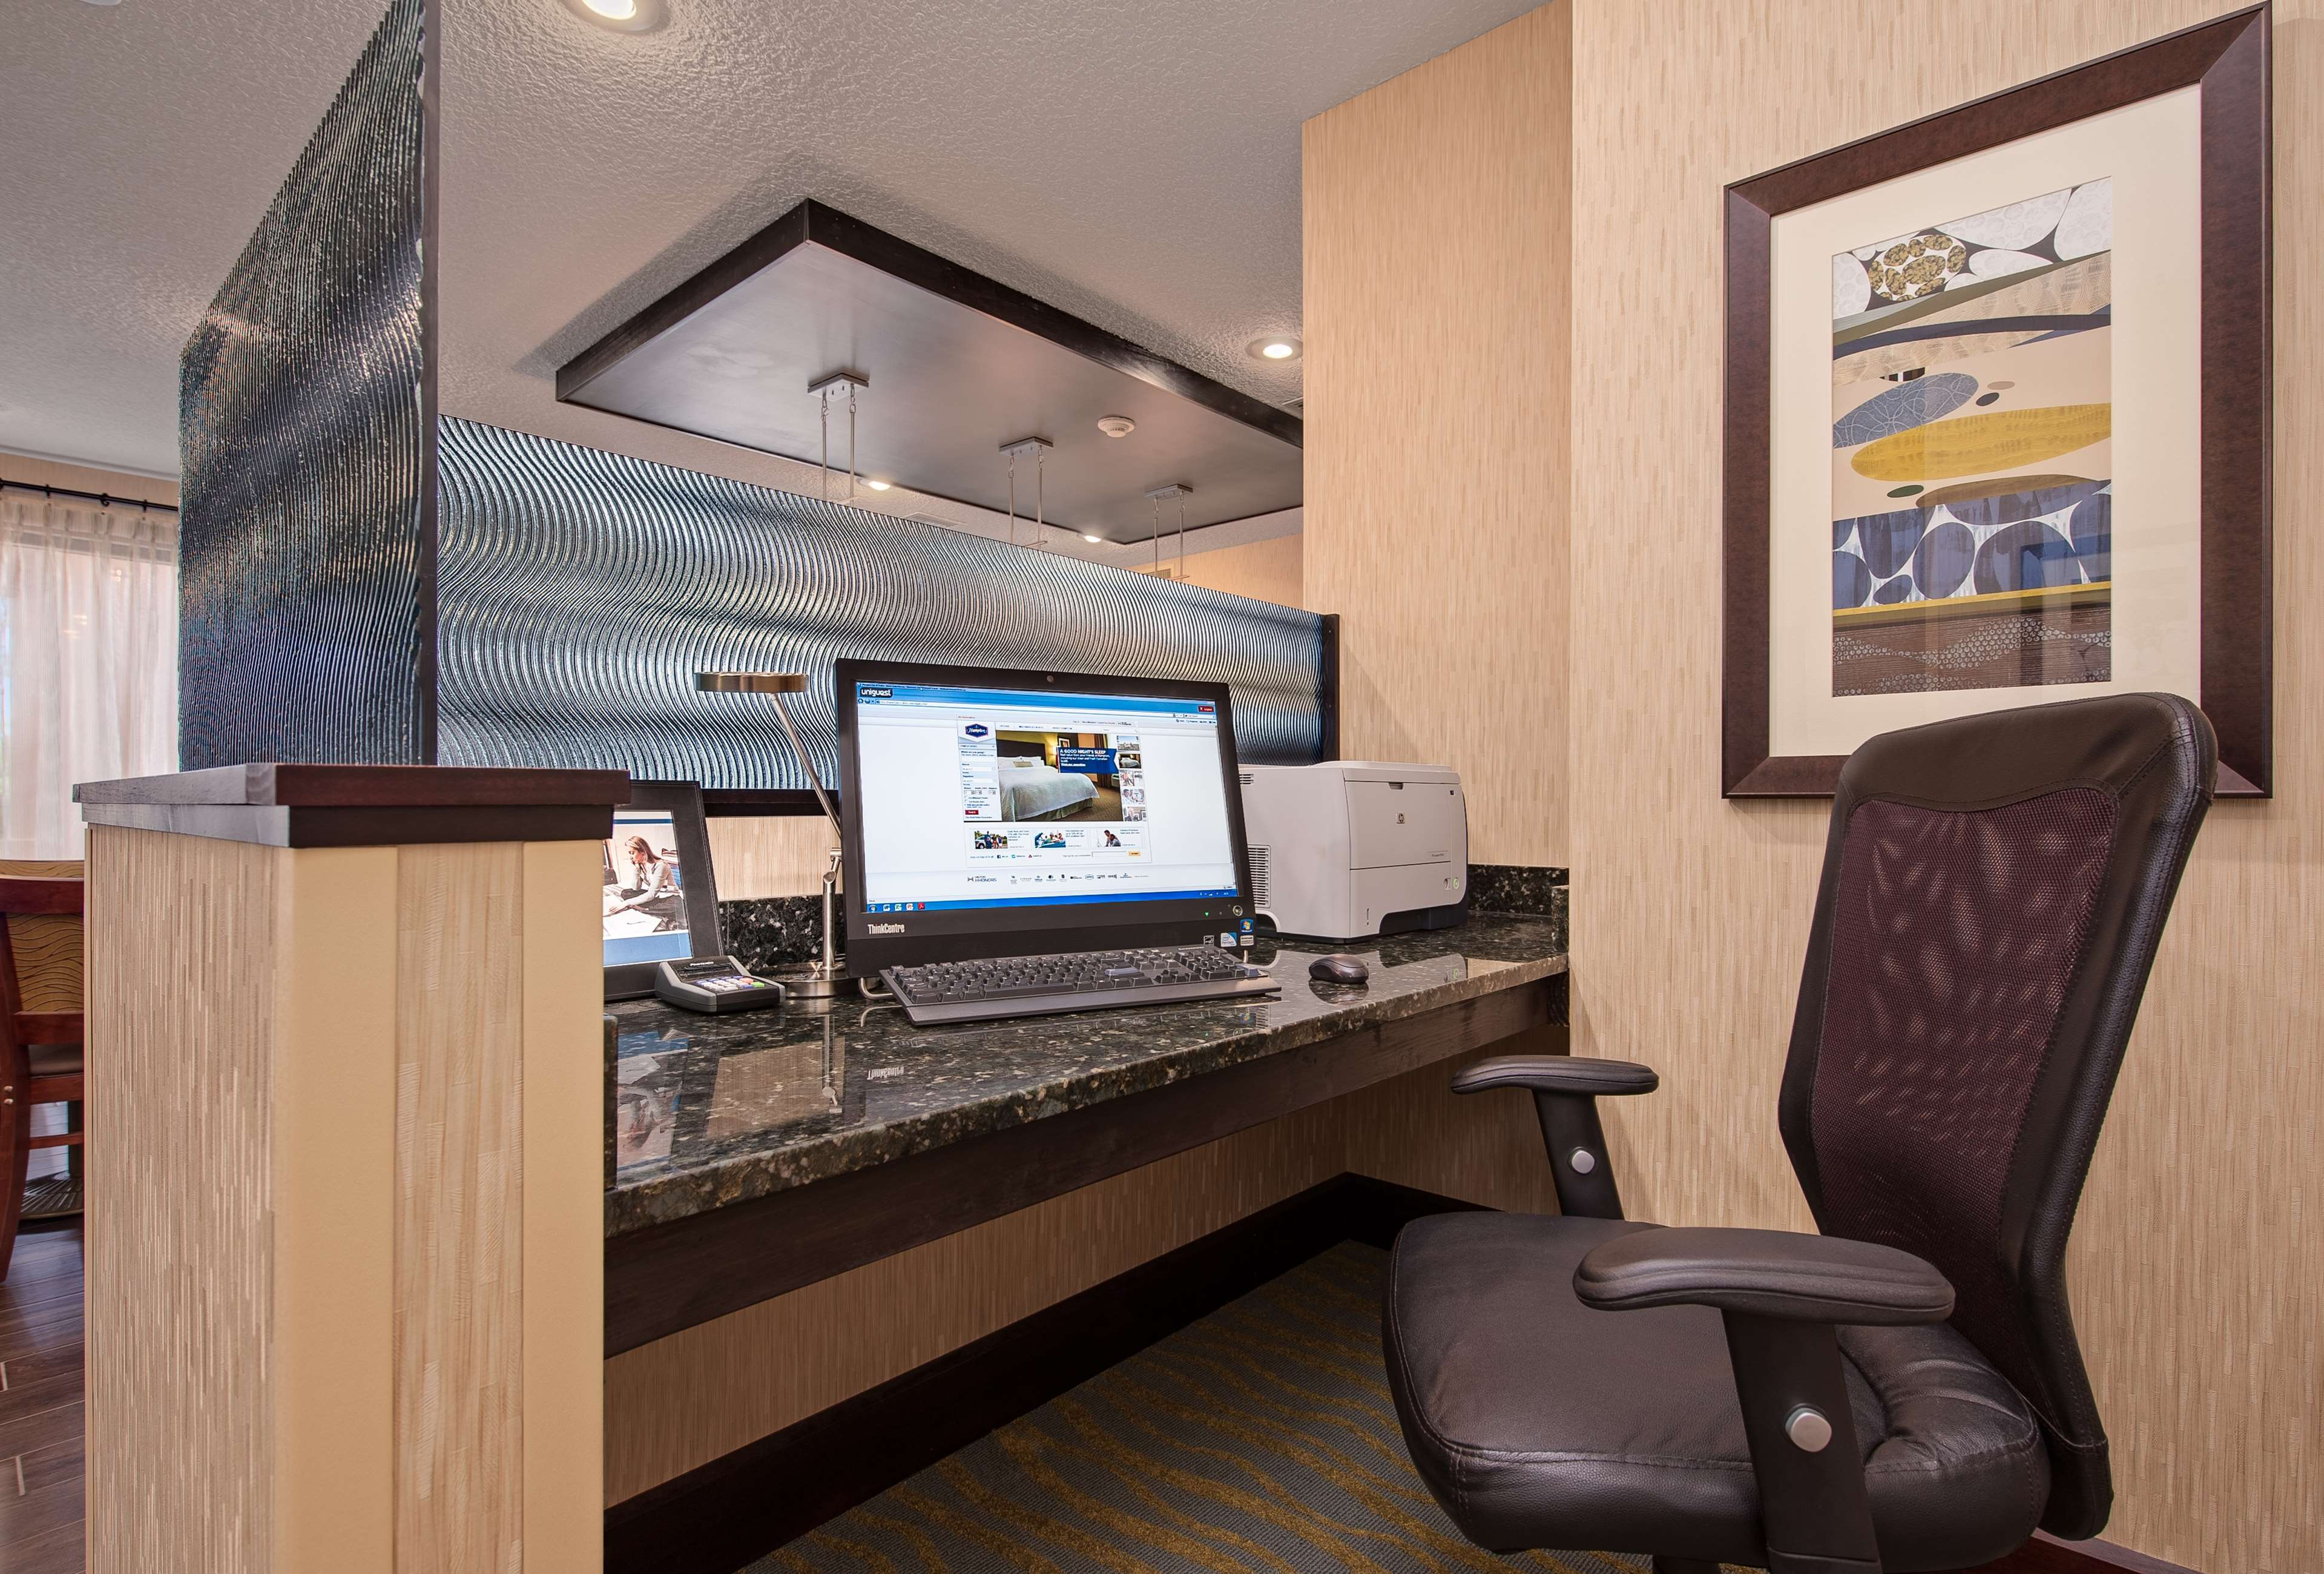 Hampton Inn Niceville-Eglin Air Force Base image 24